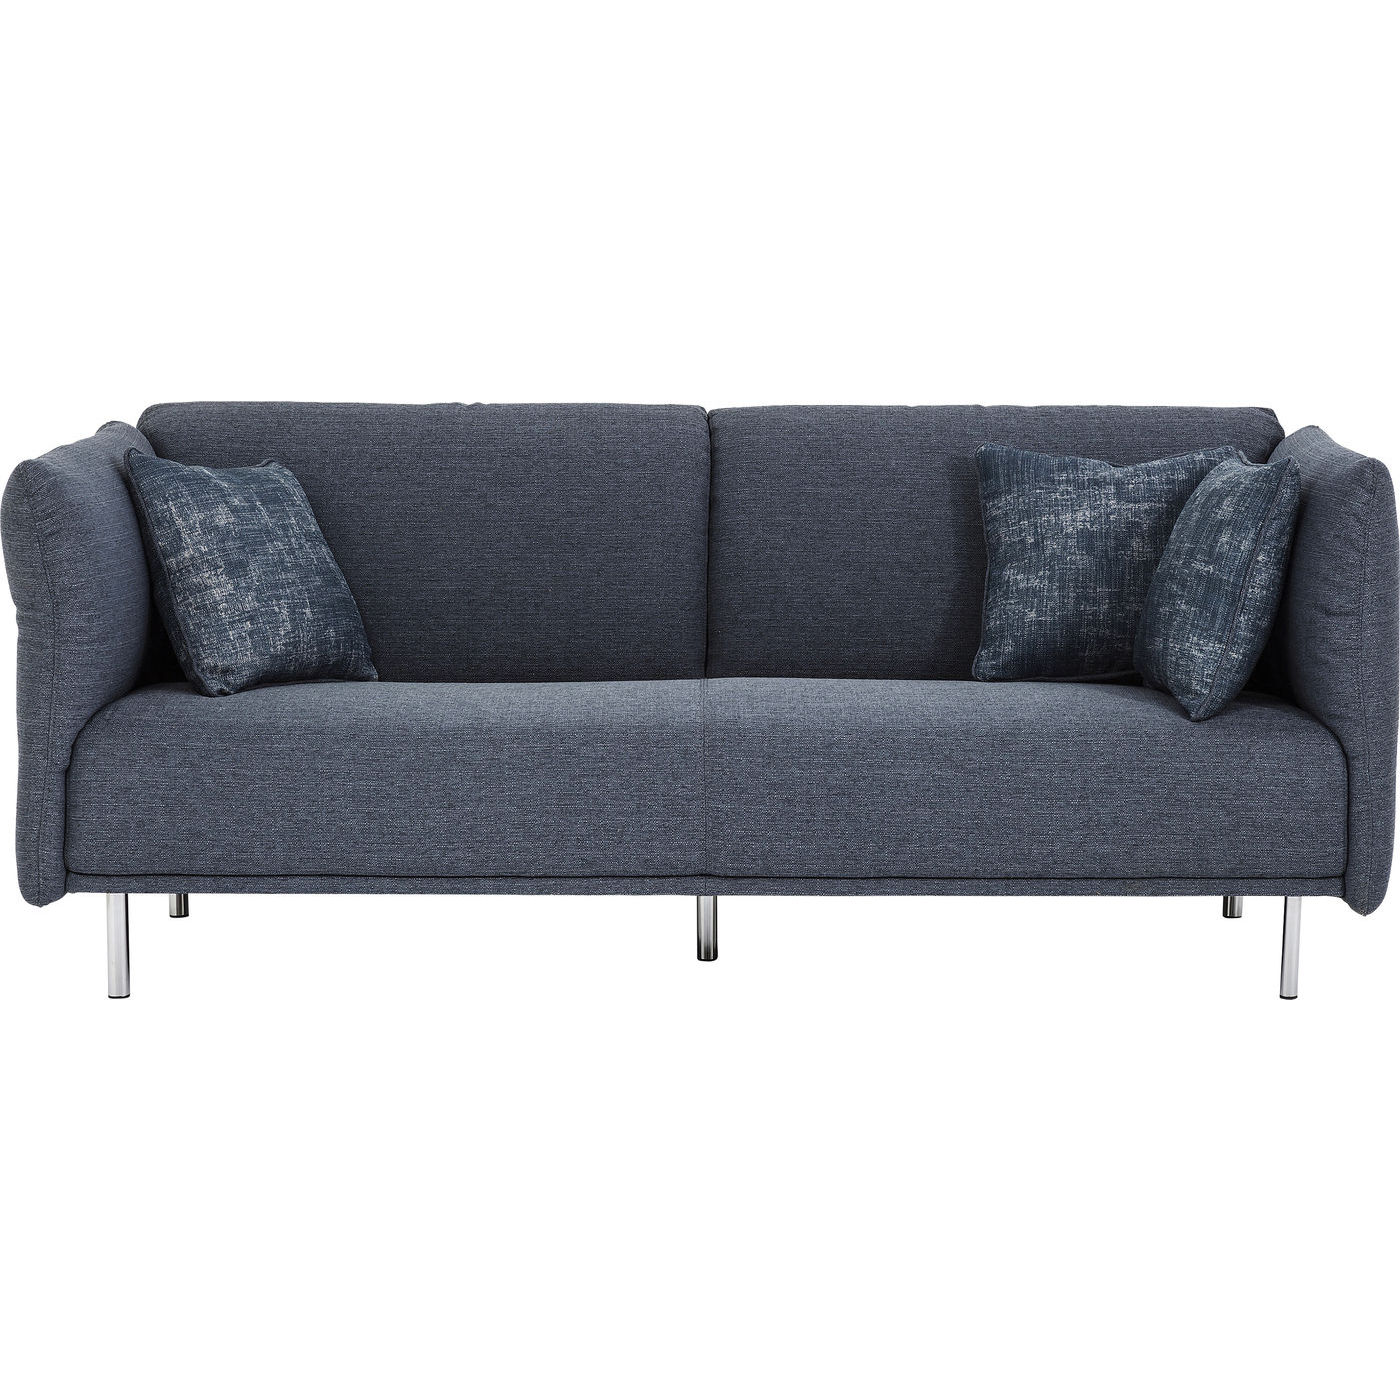 Kare Design Cuscino Sofa thumbnail